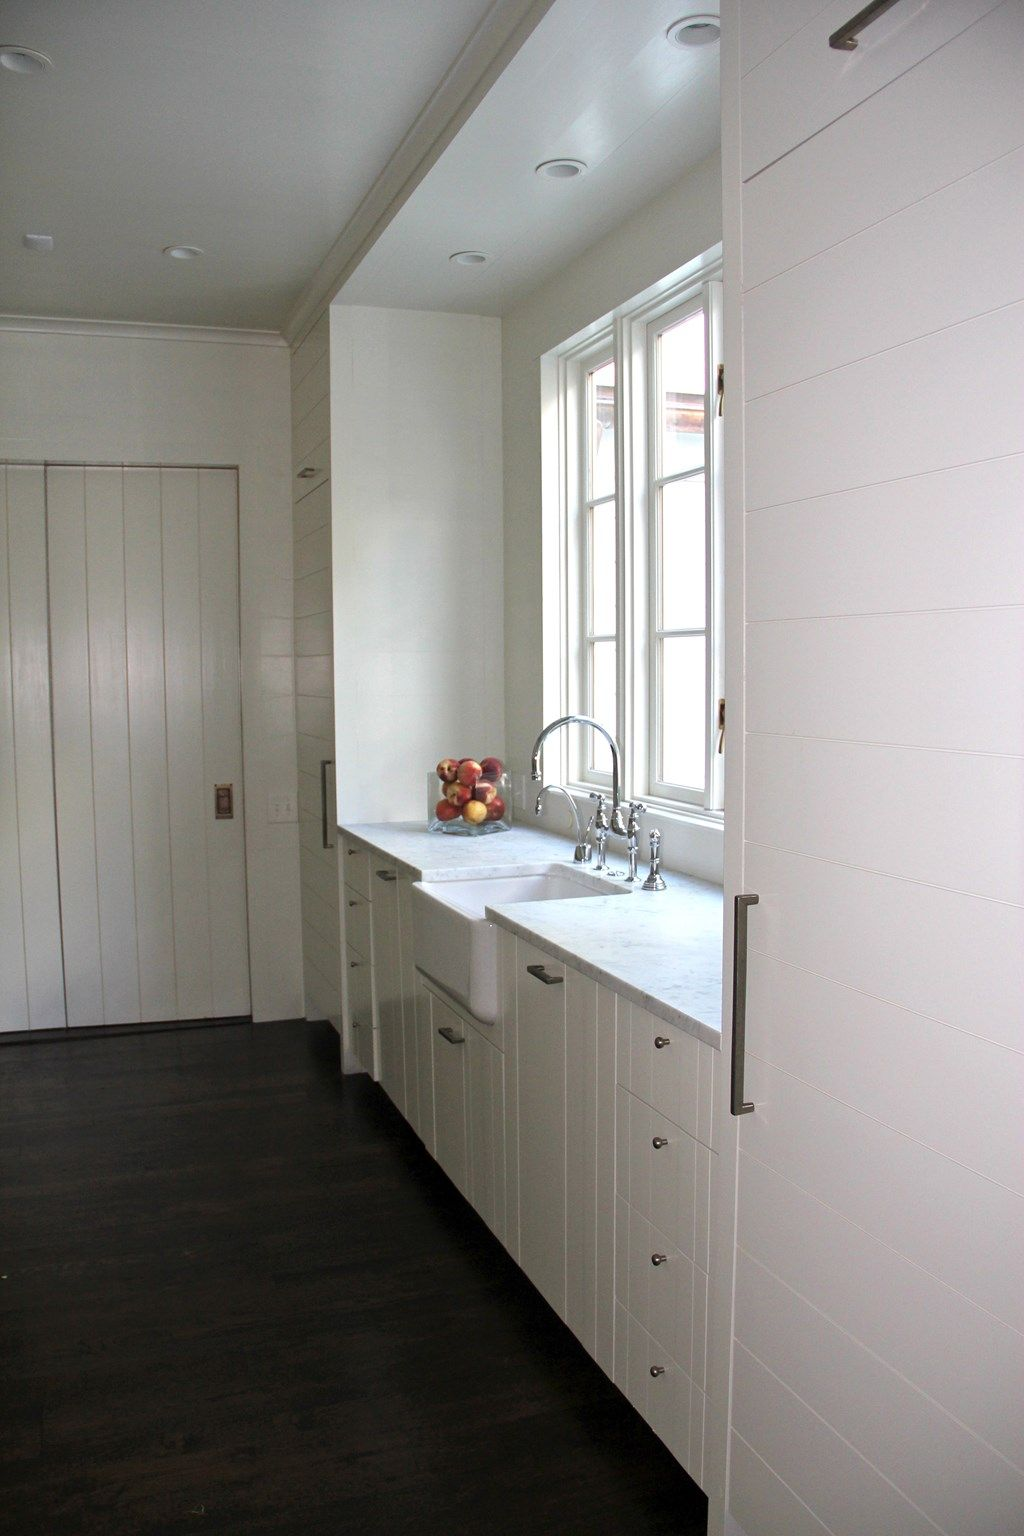 The Purdy Kitchen